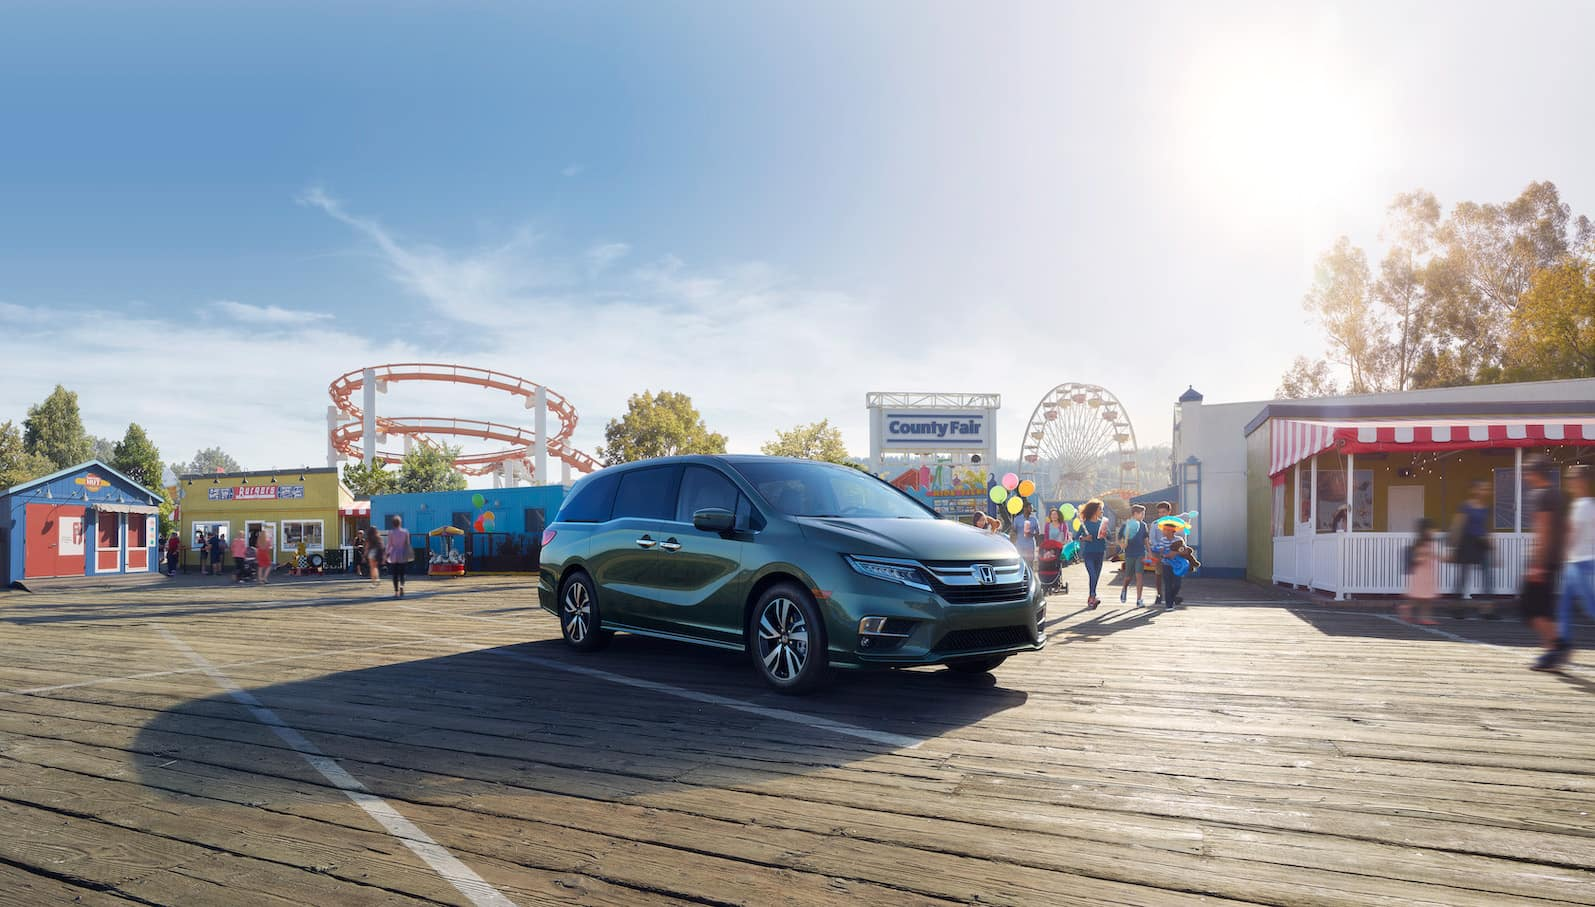 Model Features of the 2019 Honda Odyssey at Boch Honda West of Westford | 2019 odyssey parked at an amusement park